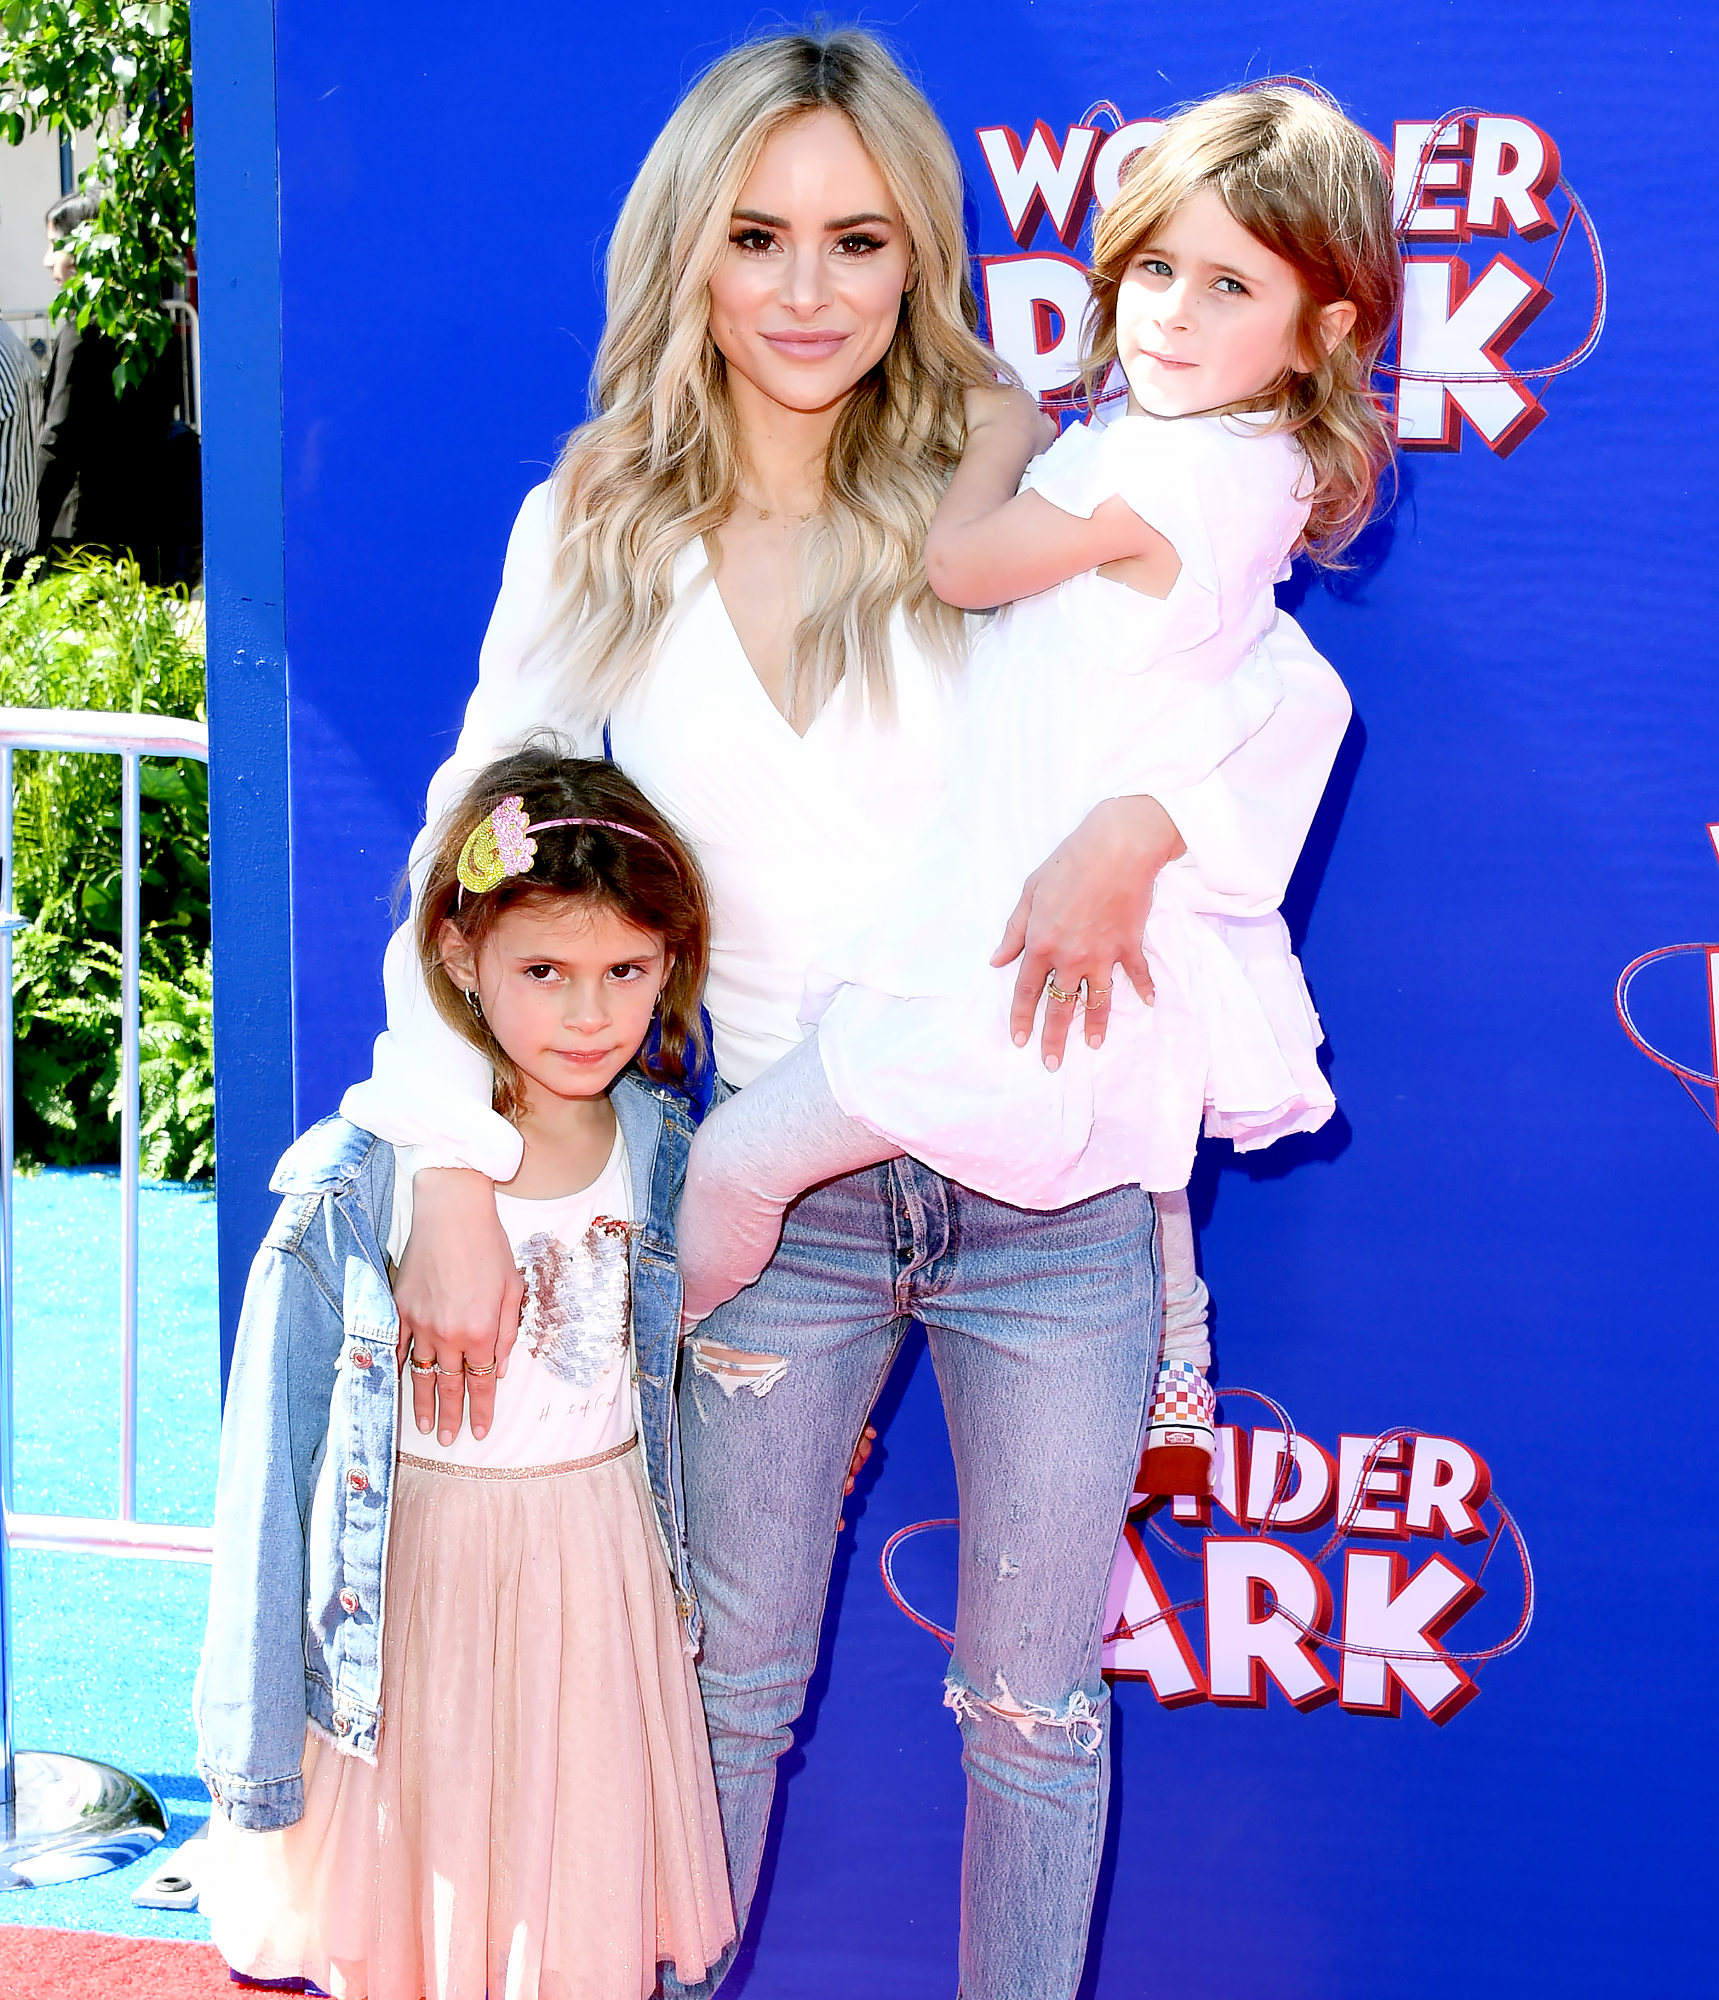 Amanda-Stanton-Celebrates-29th-Birthday-With-Daughters-After-Bobby-Jacobs-Split